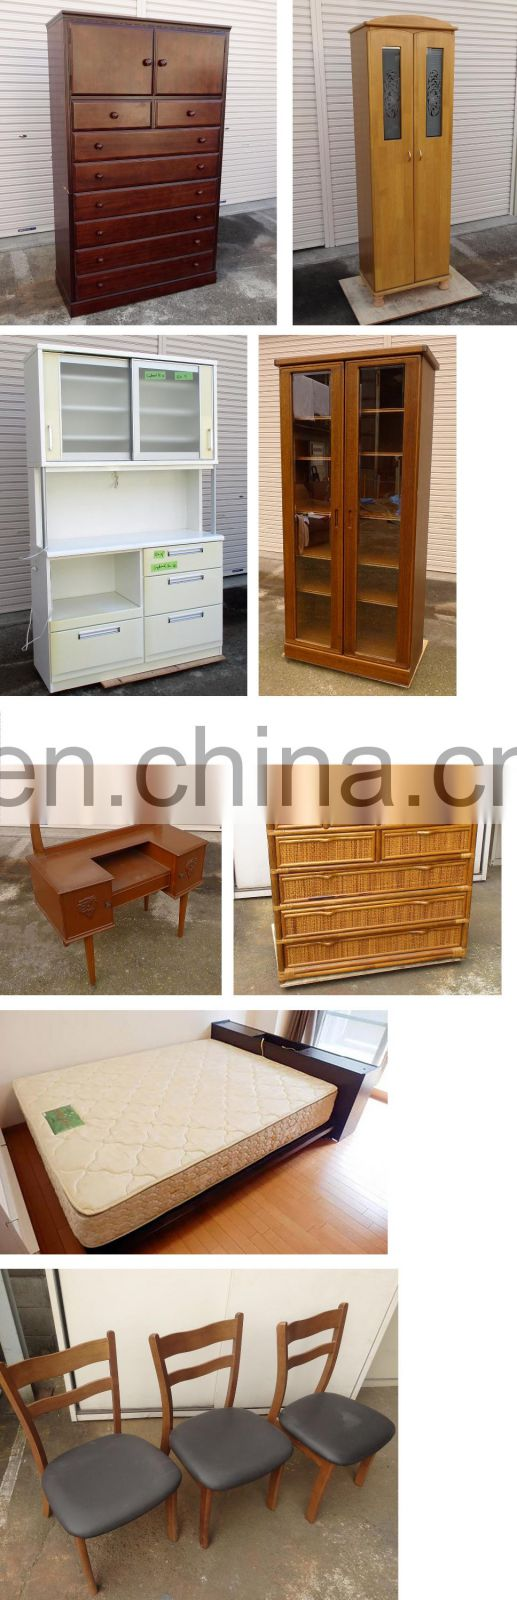 Comfortable Used Japanese Bedroom Furniture Prices /the Dressers, the Mattresses, etc.